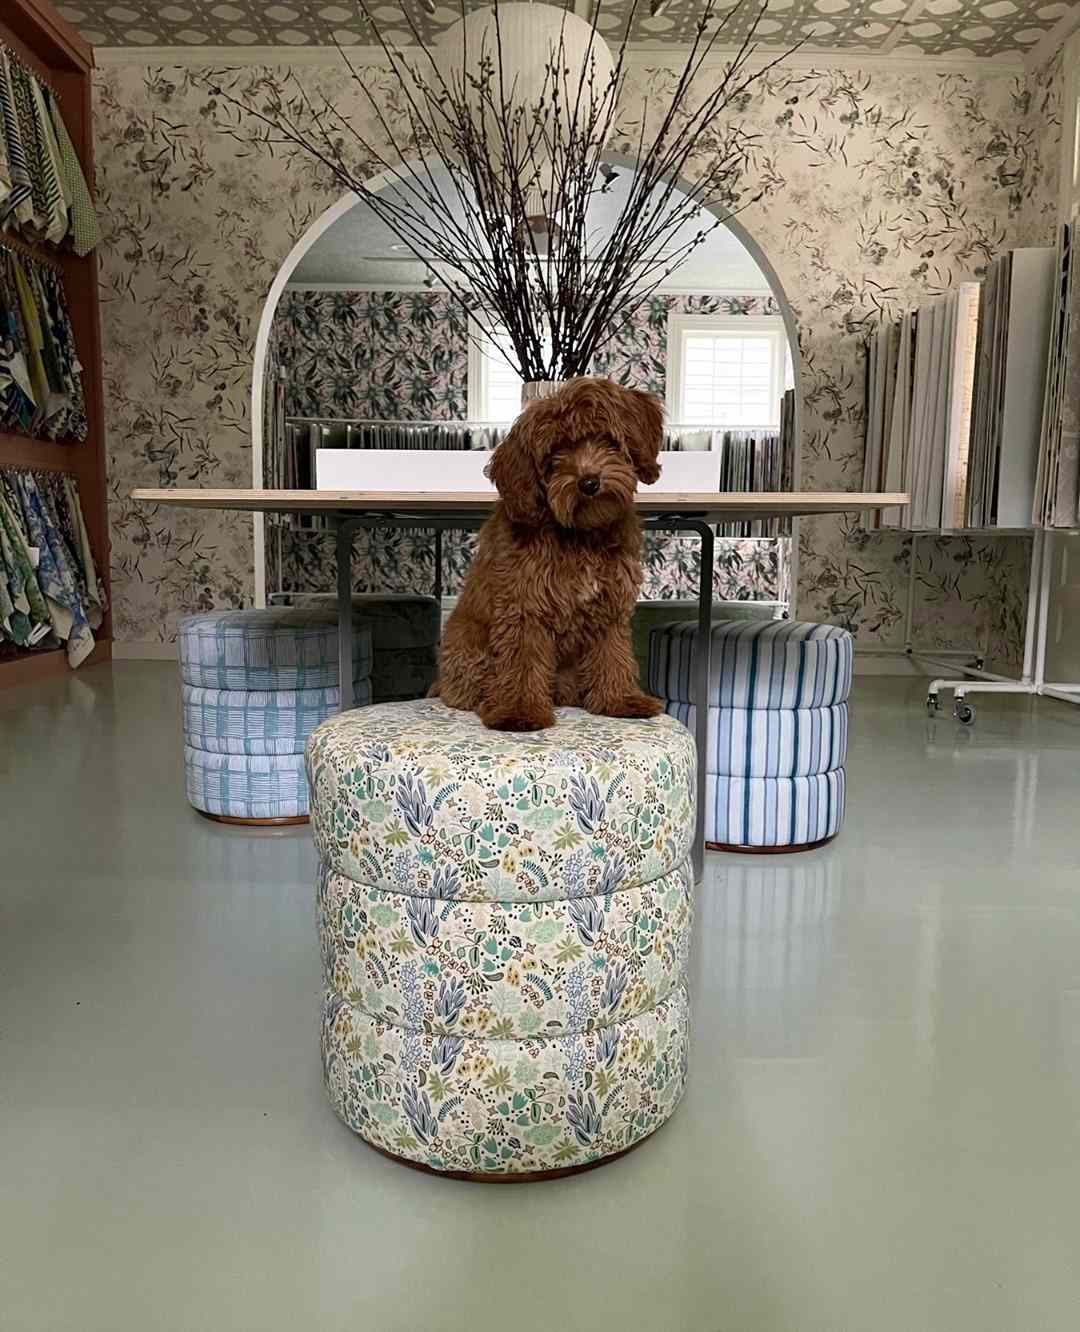 Cute brown dog on patterned ottoman.